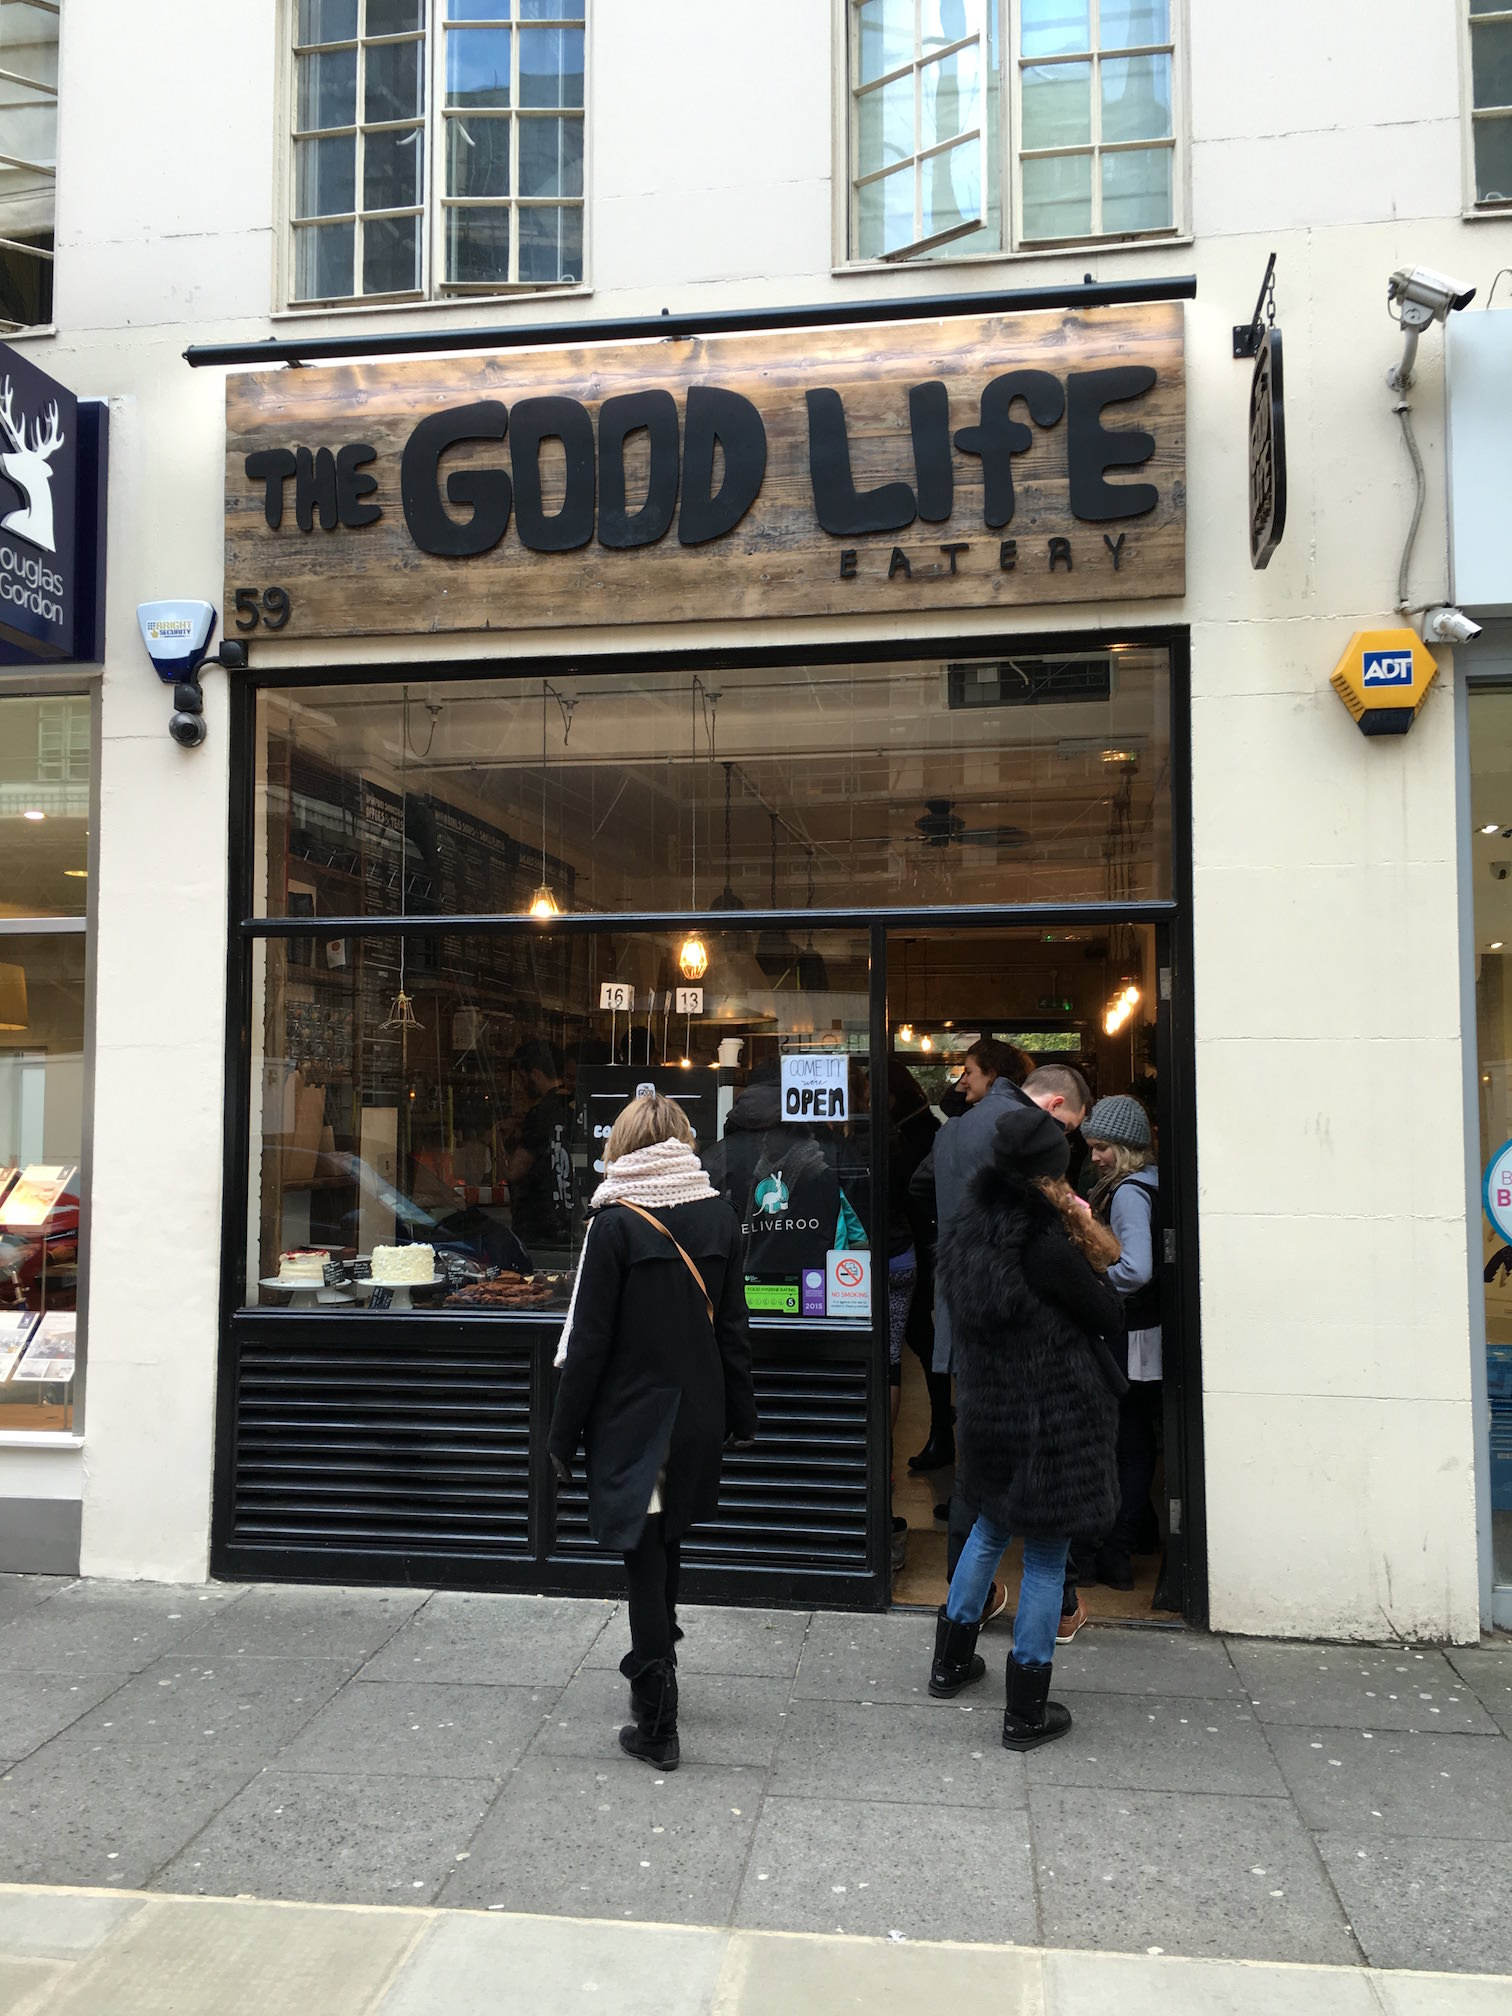 The Good Life Eatery - London